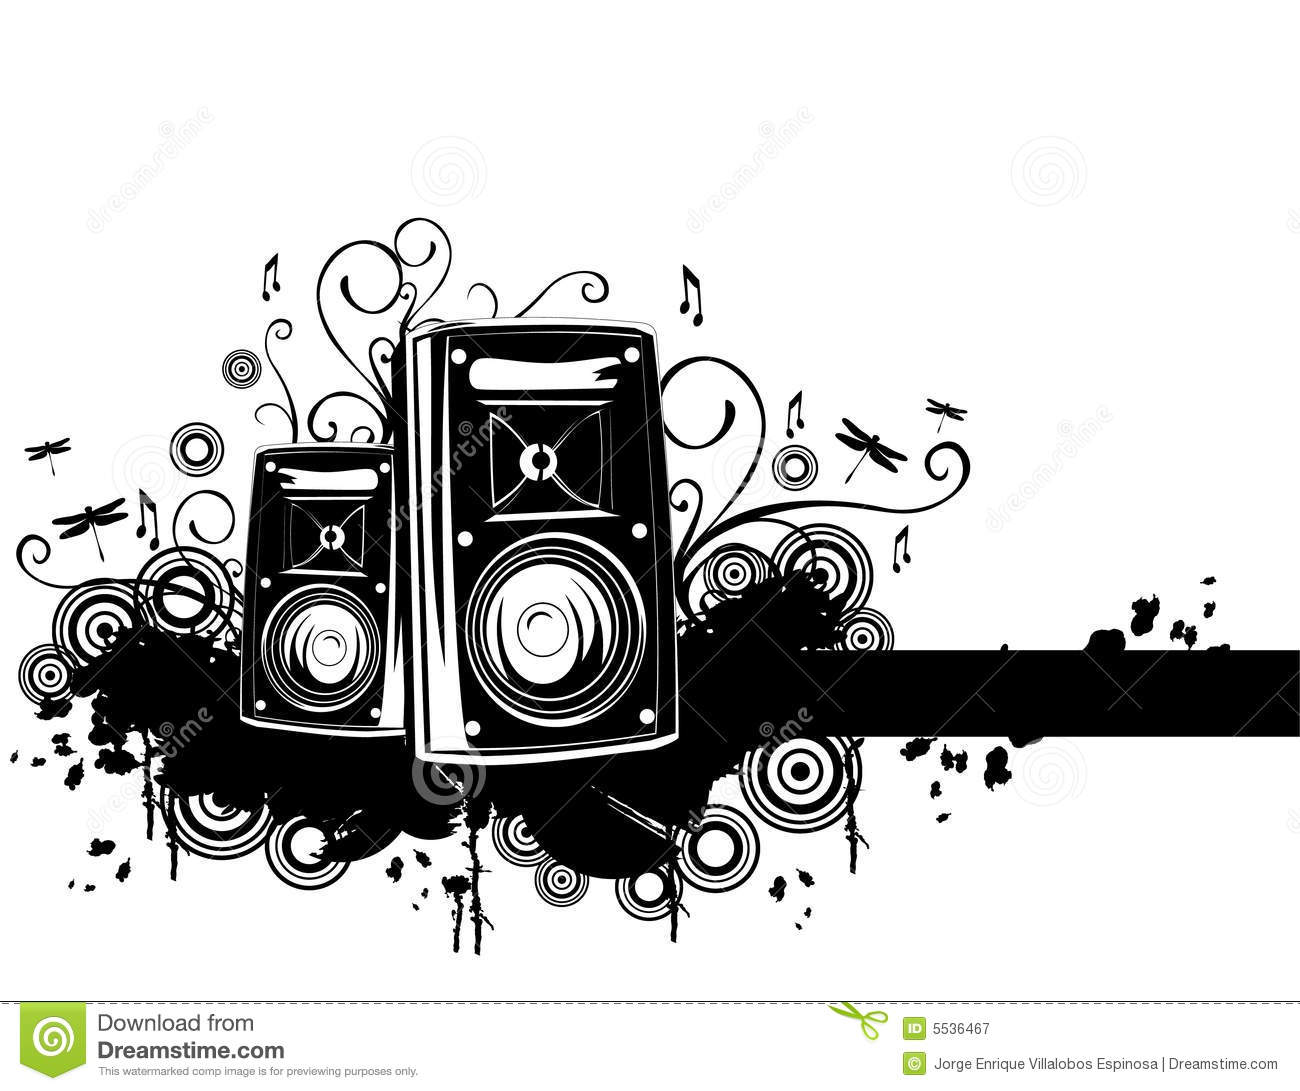 Speakers Vector Stock Vector. Illustration Of Floral